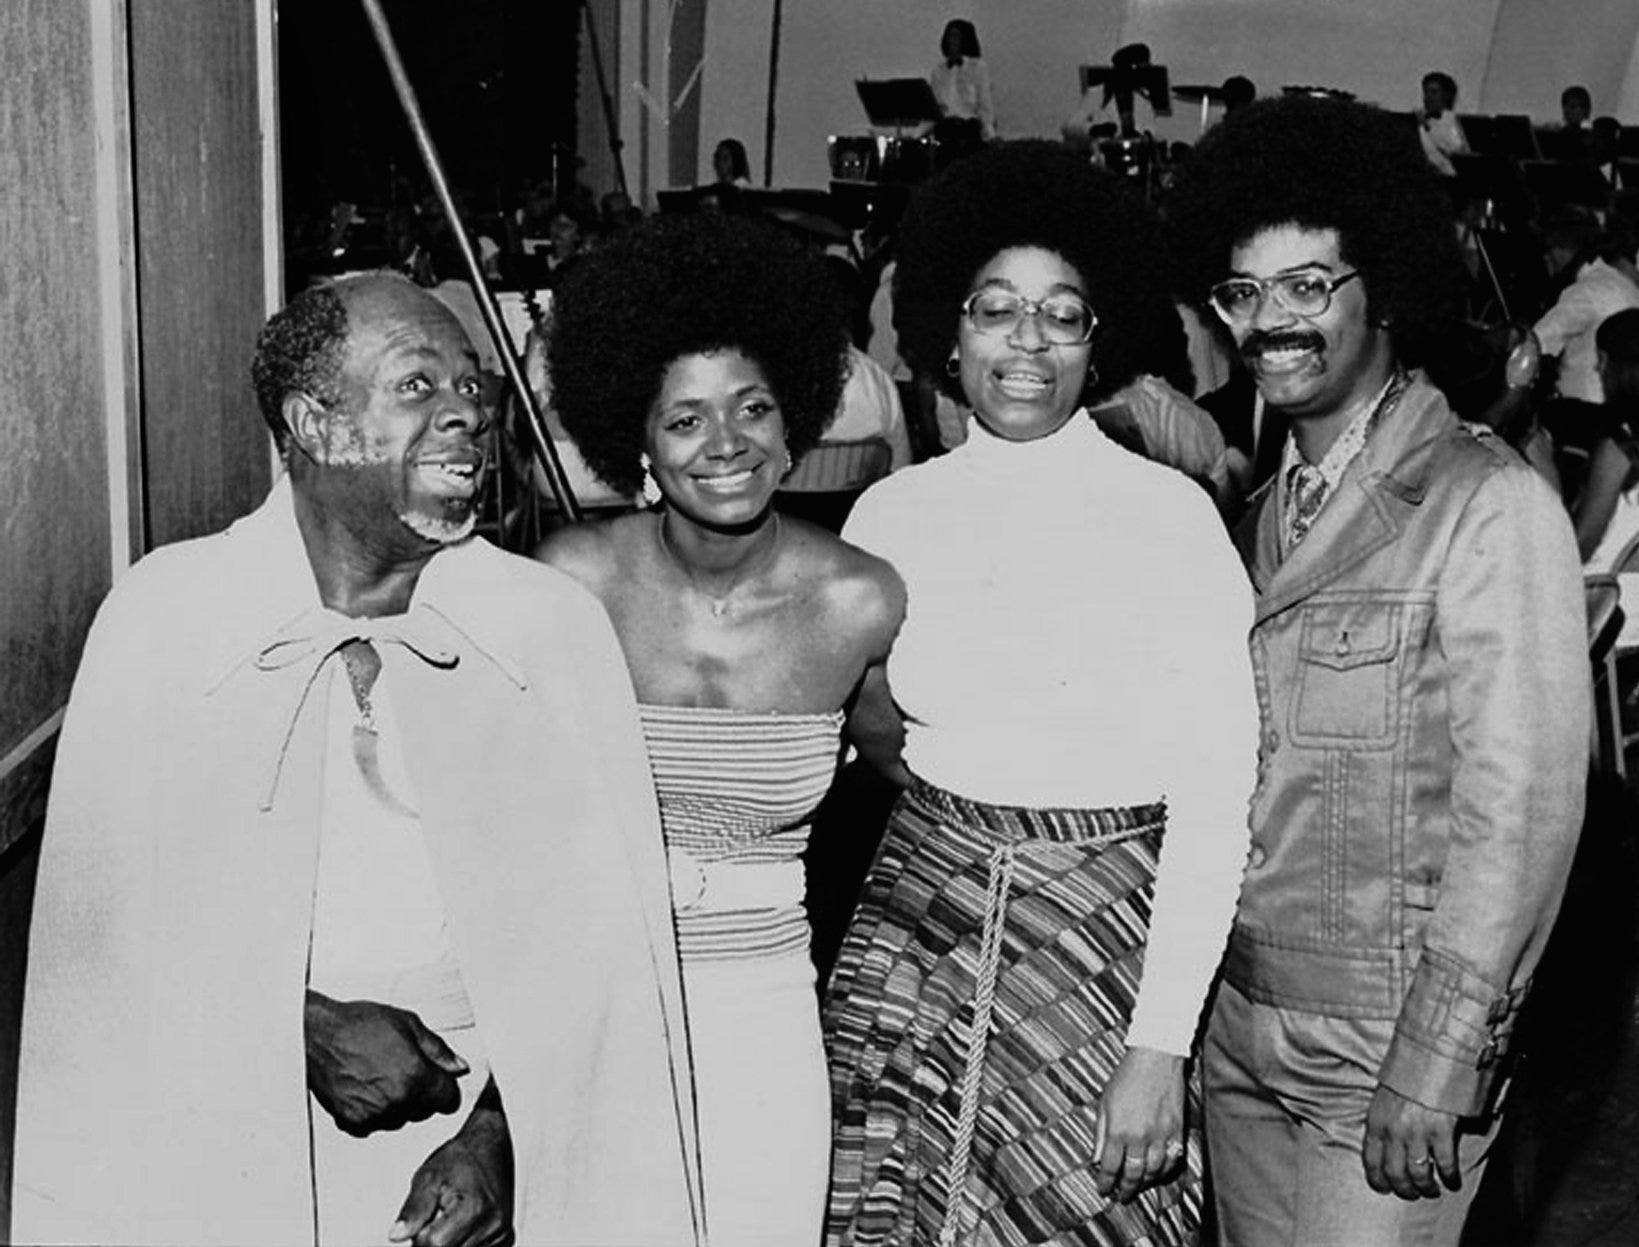 """Richard Gardner, The Commercial Appeal files From left, Rufus, Carla, Vaneese & Marvell Thomas gathered at the Overton Park Shell to perform before about 5,000 fans at an Arts In The Parks presentation on July 17, 1973. Rufus Thomas performed his """"Funky Chicken"""" and other dances that made him famous and Carla sang the songs that made her and STAX Records famous. (Left to Right) Rufus, Carla, Vaneese & Marvell Thomas gathered at the Overton Park Shell to perform before about 5,000 fans at an Arts In The Parks presentation on July 17, 1973. Rufus Thomas performed his """"Funky Chicken"""" and other dances that made him famous and Carla sang the songs that made her and STAX Records famous. Rufus Thomas died Saturday, Dec. 15, 2001 in Memphis, Tenn. He was 84."""